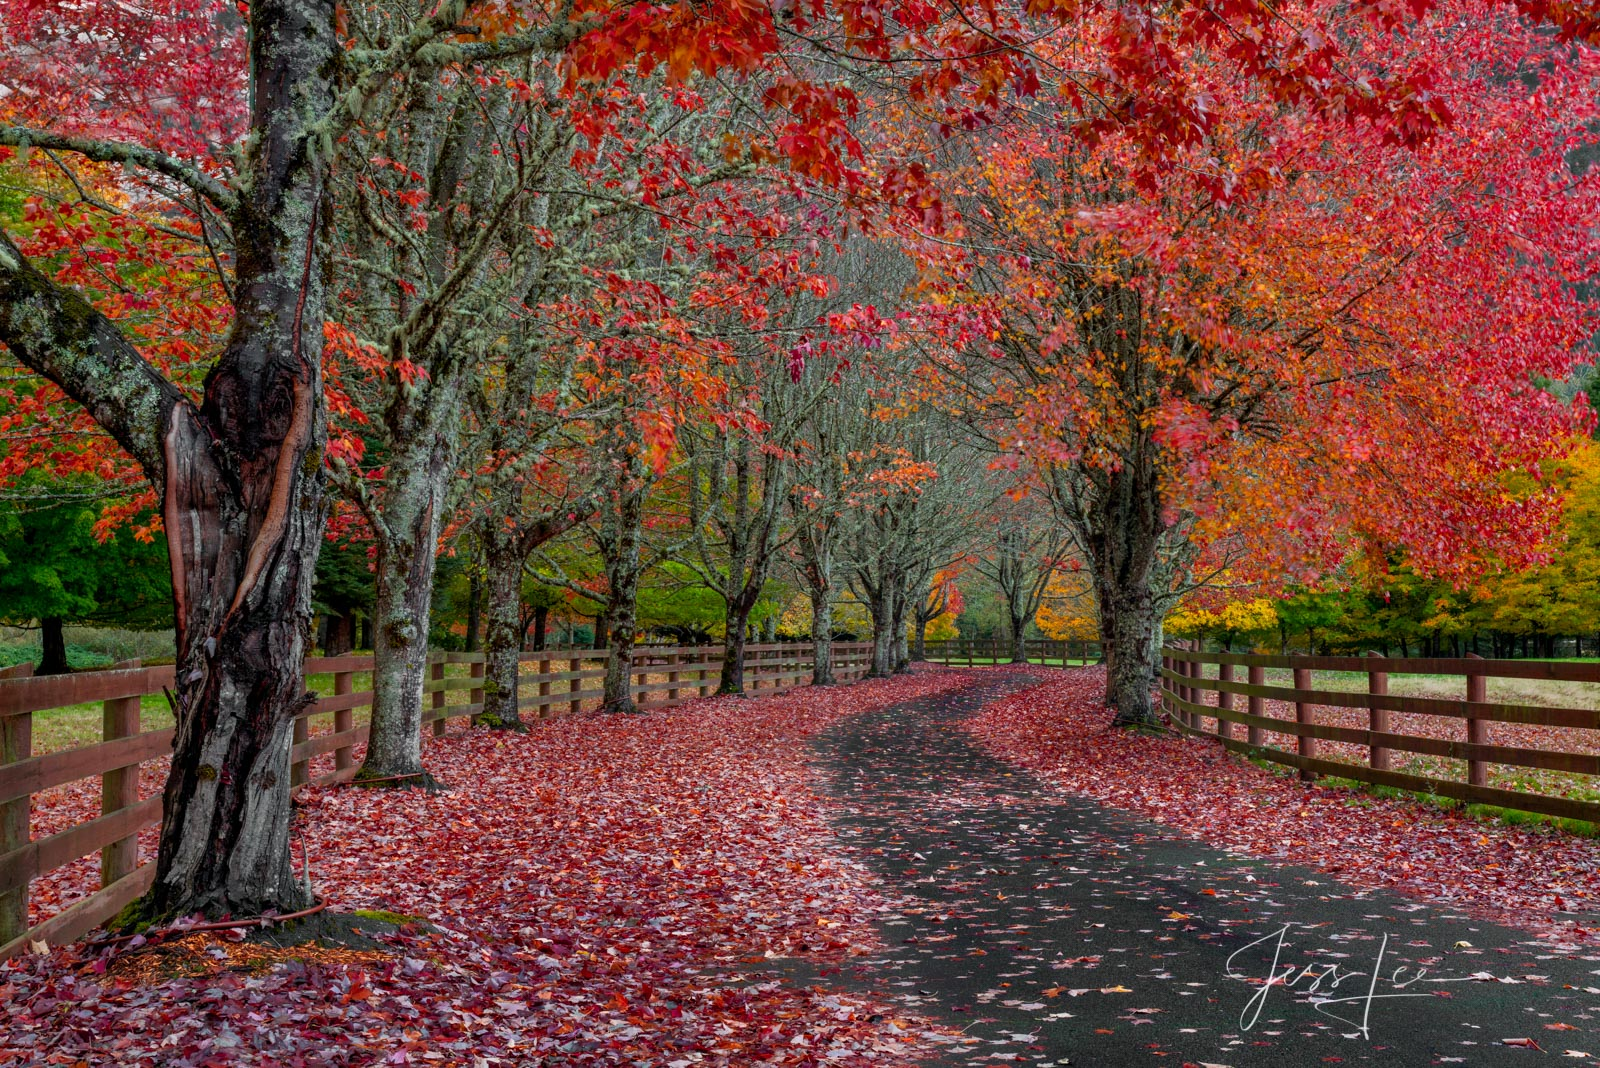 Let your mind drift and take you into this calming autumn path with this Limited Edition of 50 fine art prints of the Red Way...